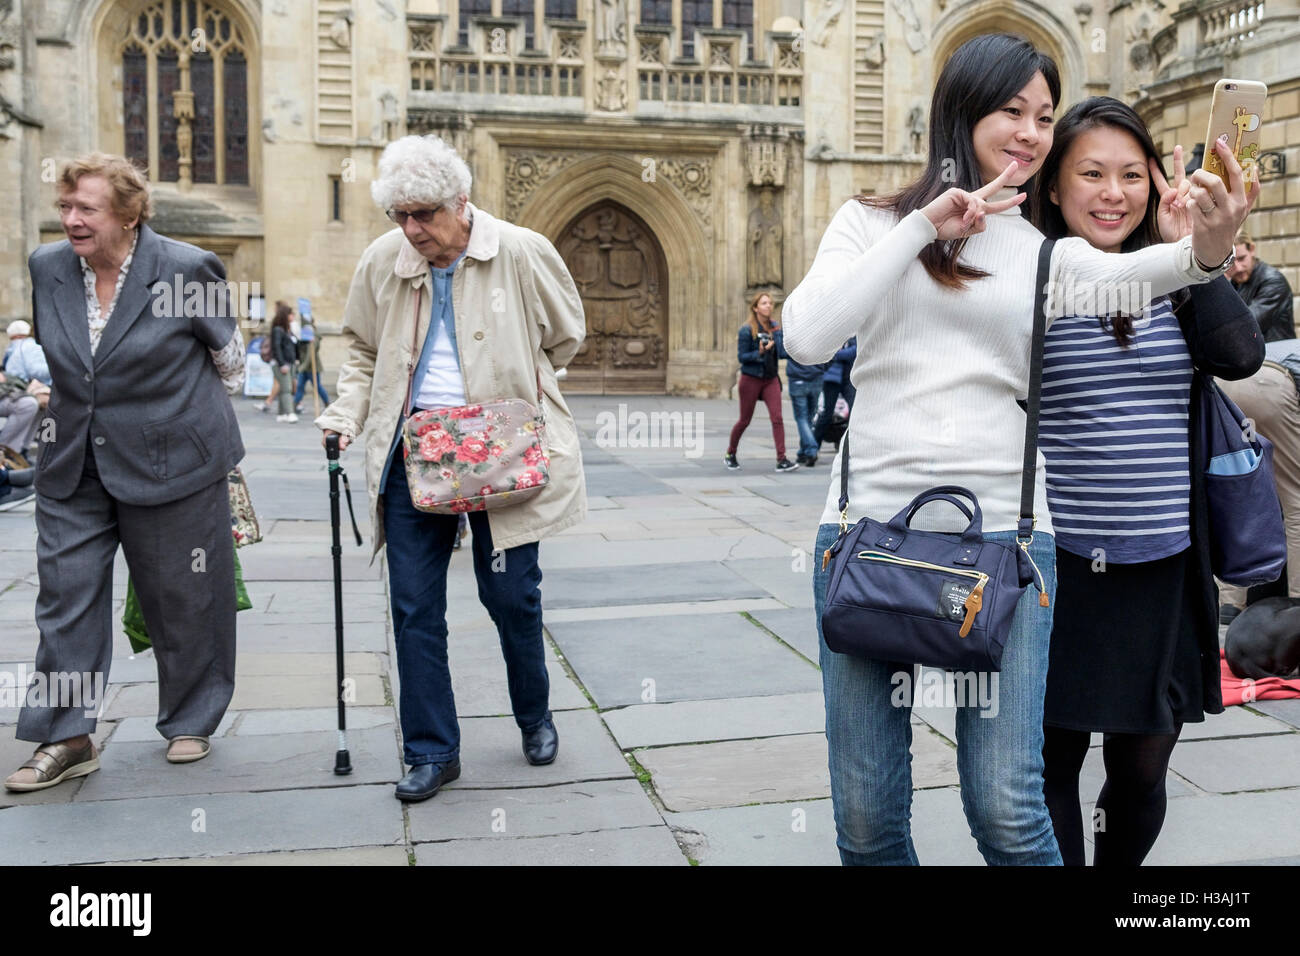 Two women tourists are pictured using a camera phone to take a selfie in front of Bath Abbey,England,UK Stock Photo